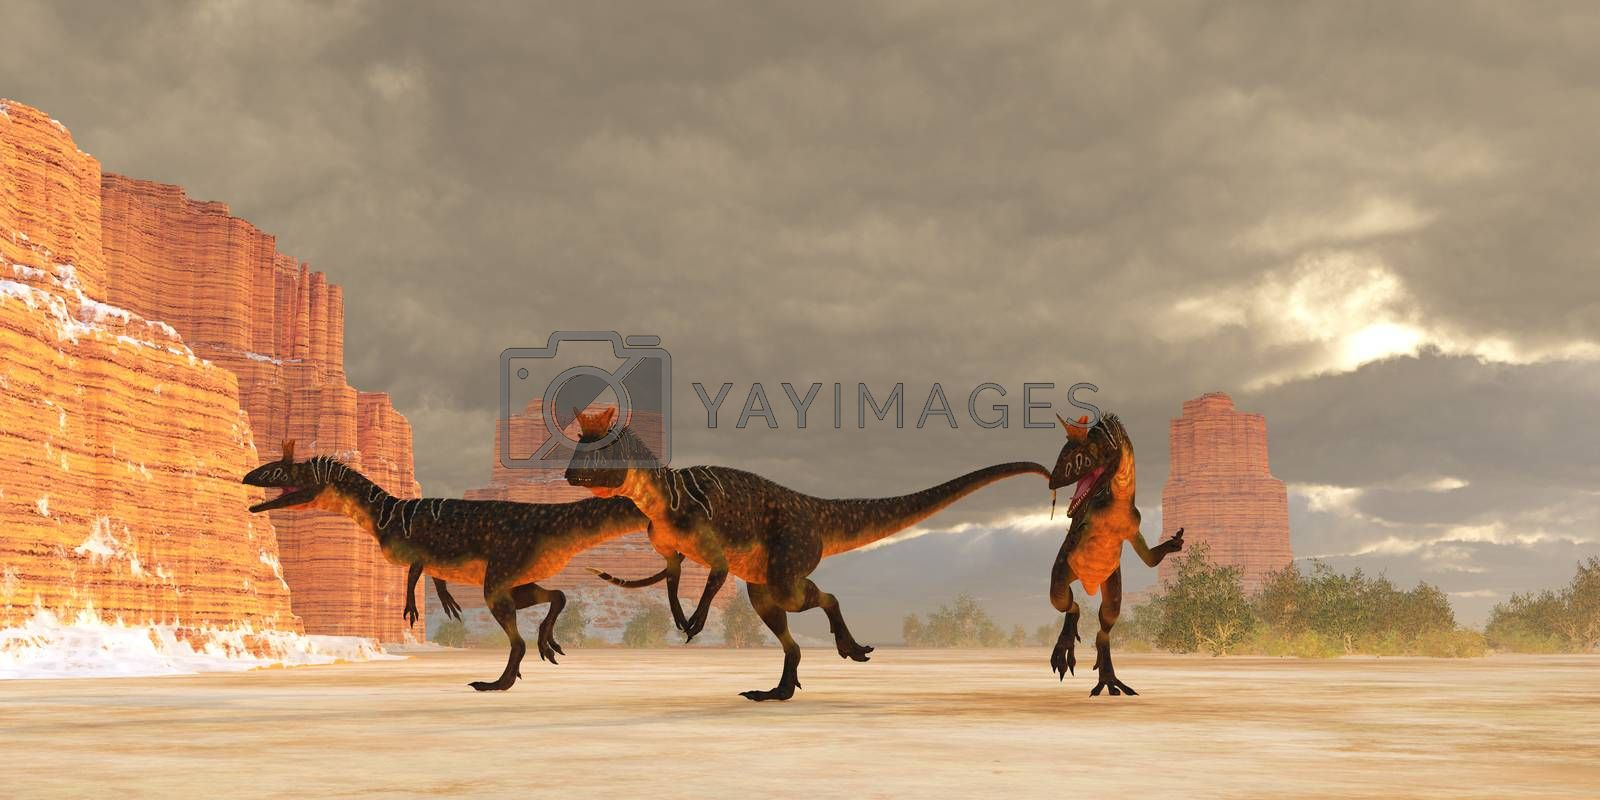 A pack of Cryolophosaurus theropod dinosaurs are on the desert trail of prey during the Jurassic Period.